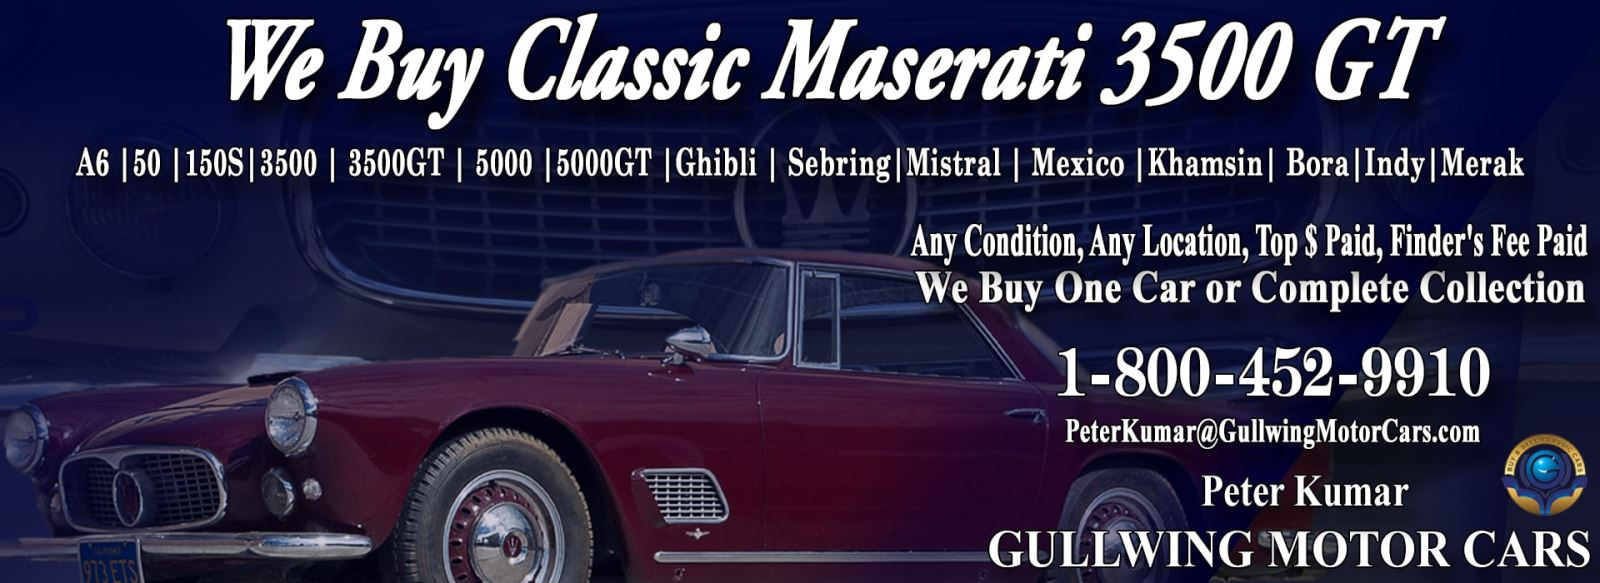 Classic Maserati 3500GT for sale, we buy vintage Maserati 3500 GT. Call Peter Kumar. Gullwing Motor